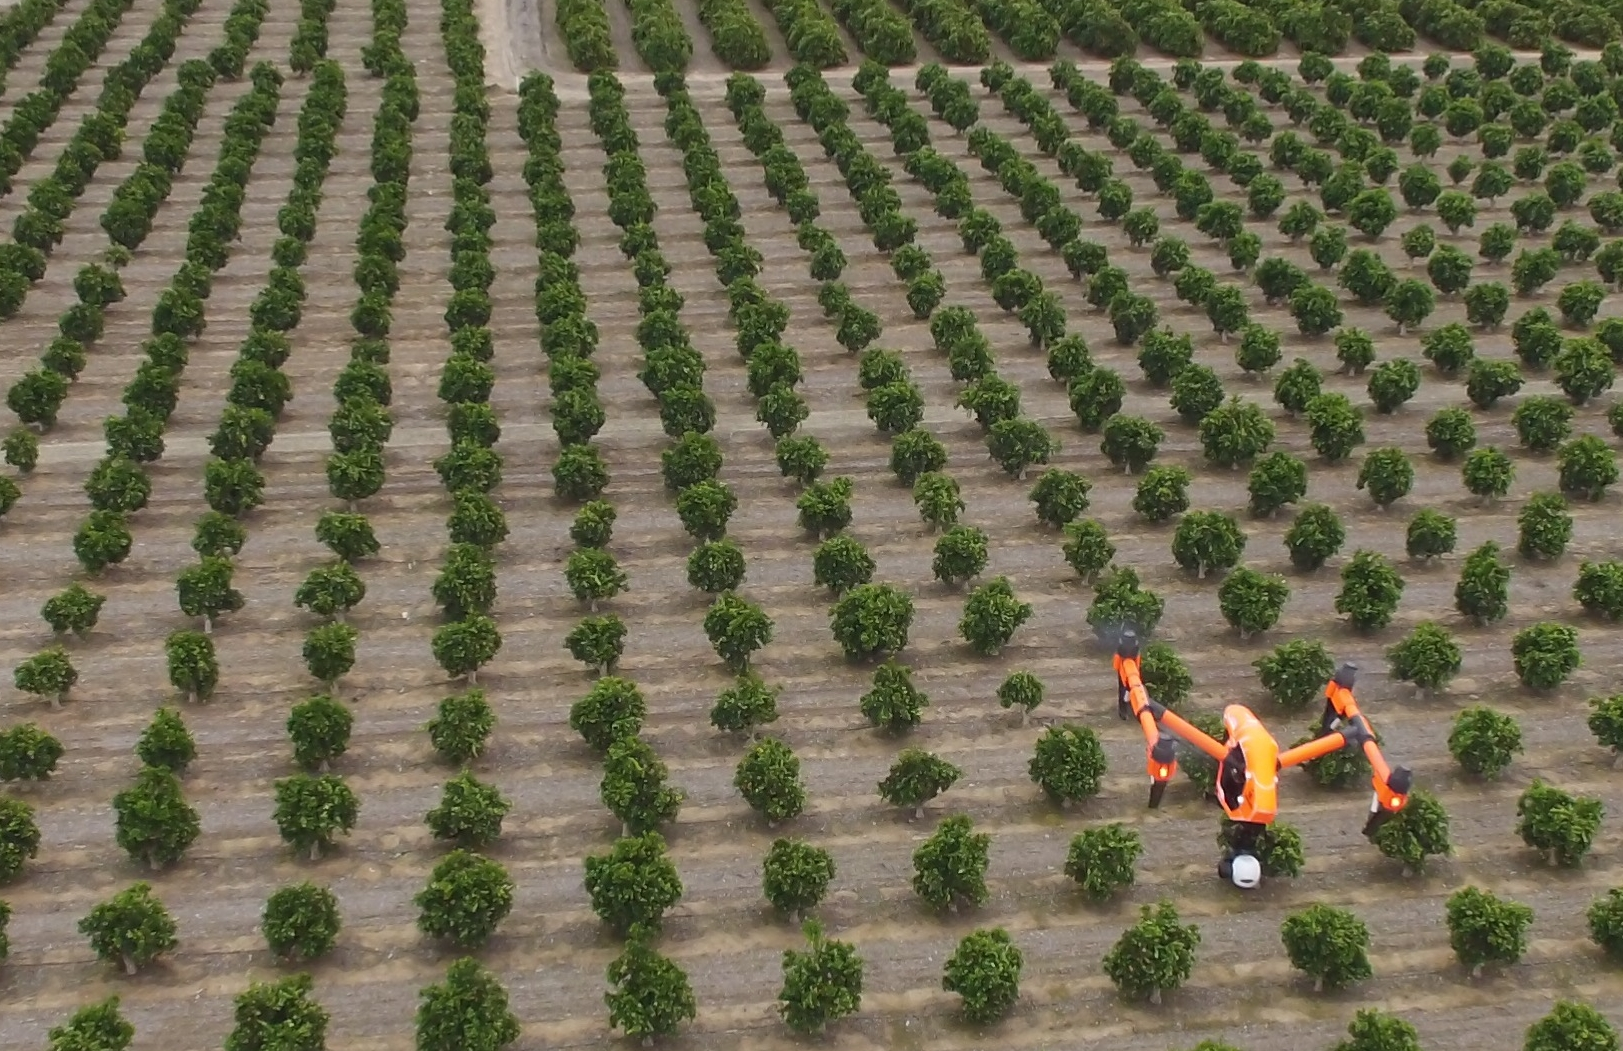 DJI Inspire 1 by FlyingAg.com  flying citrus farm in Central California use the DroneDeploy system. This platform is nice largely due to it's ability to change sensors (like Flir Sensor below) and longer flight times.  It can fly 160 acres use the DroneDeploy system which is perfect in my opinion with current regulations (within line of site).